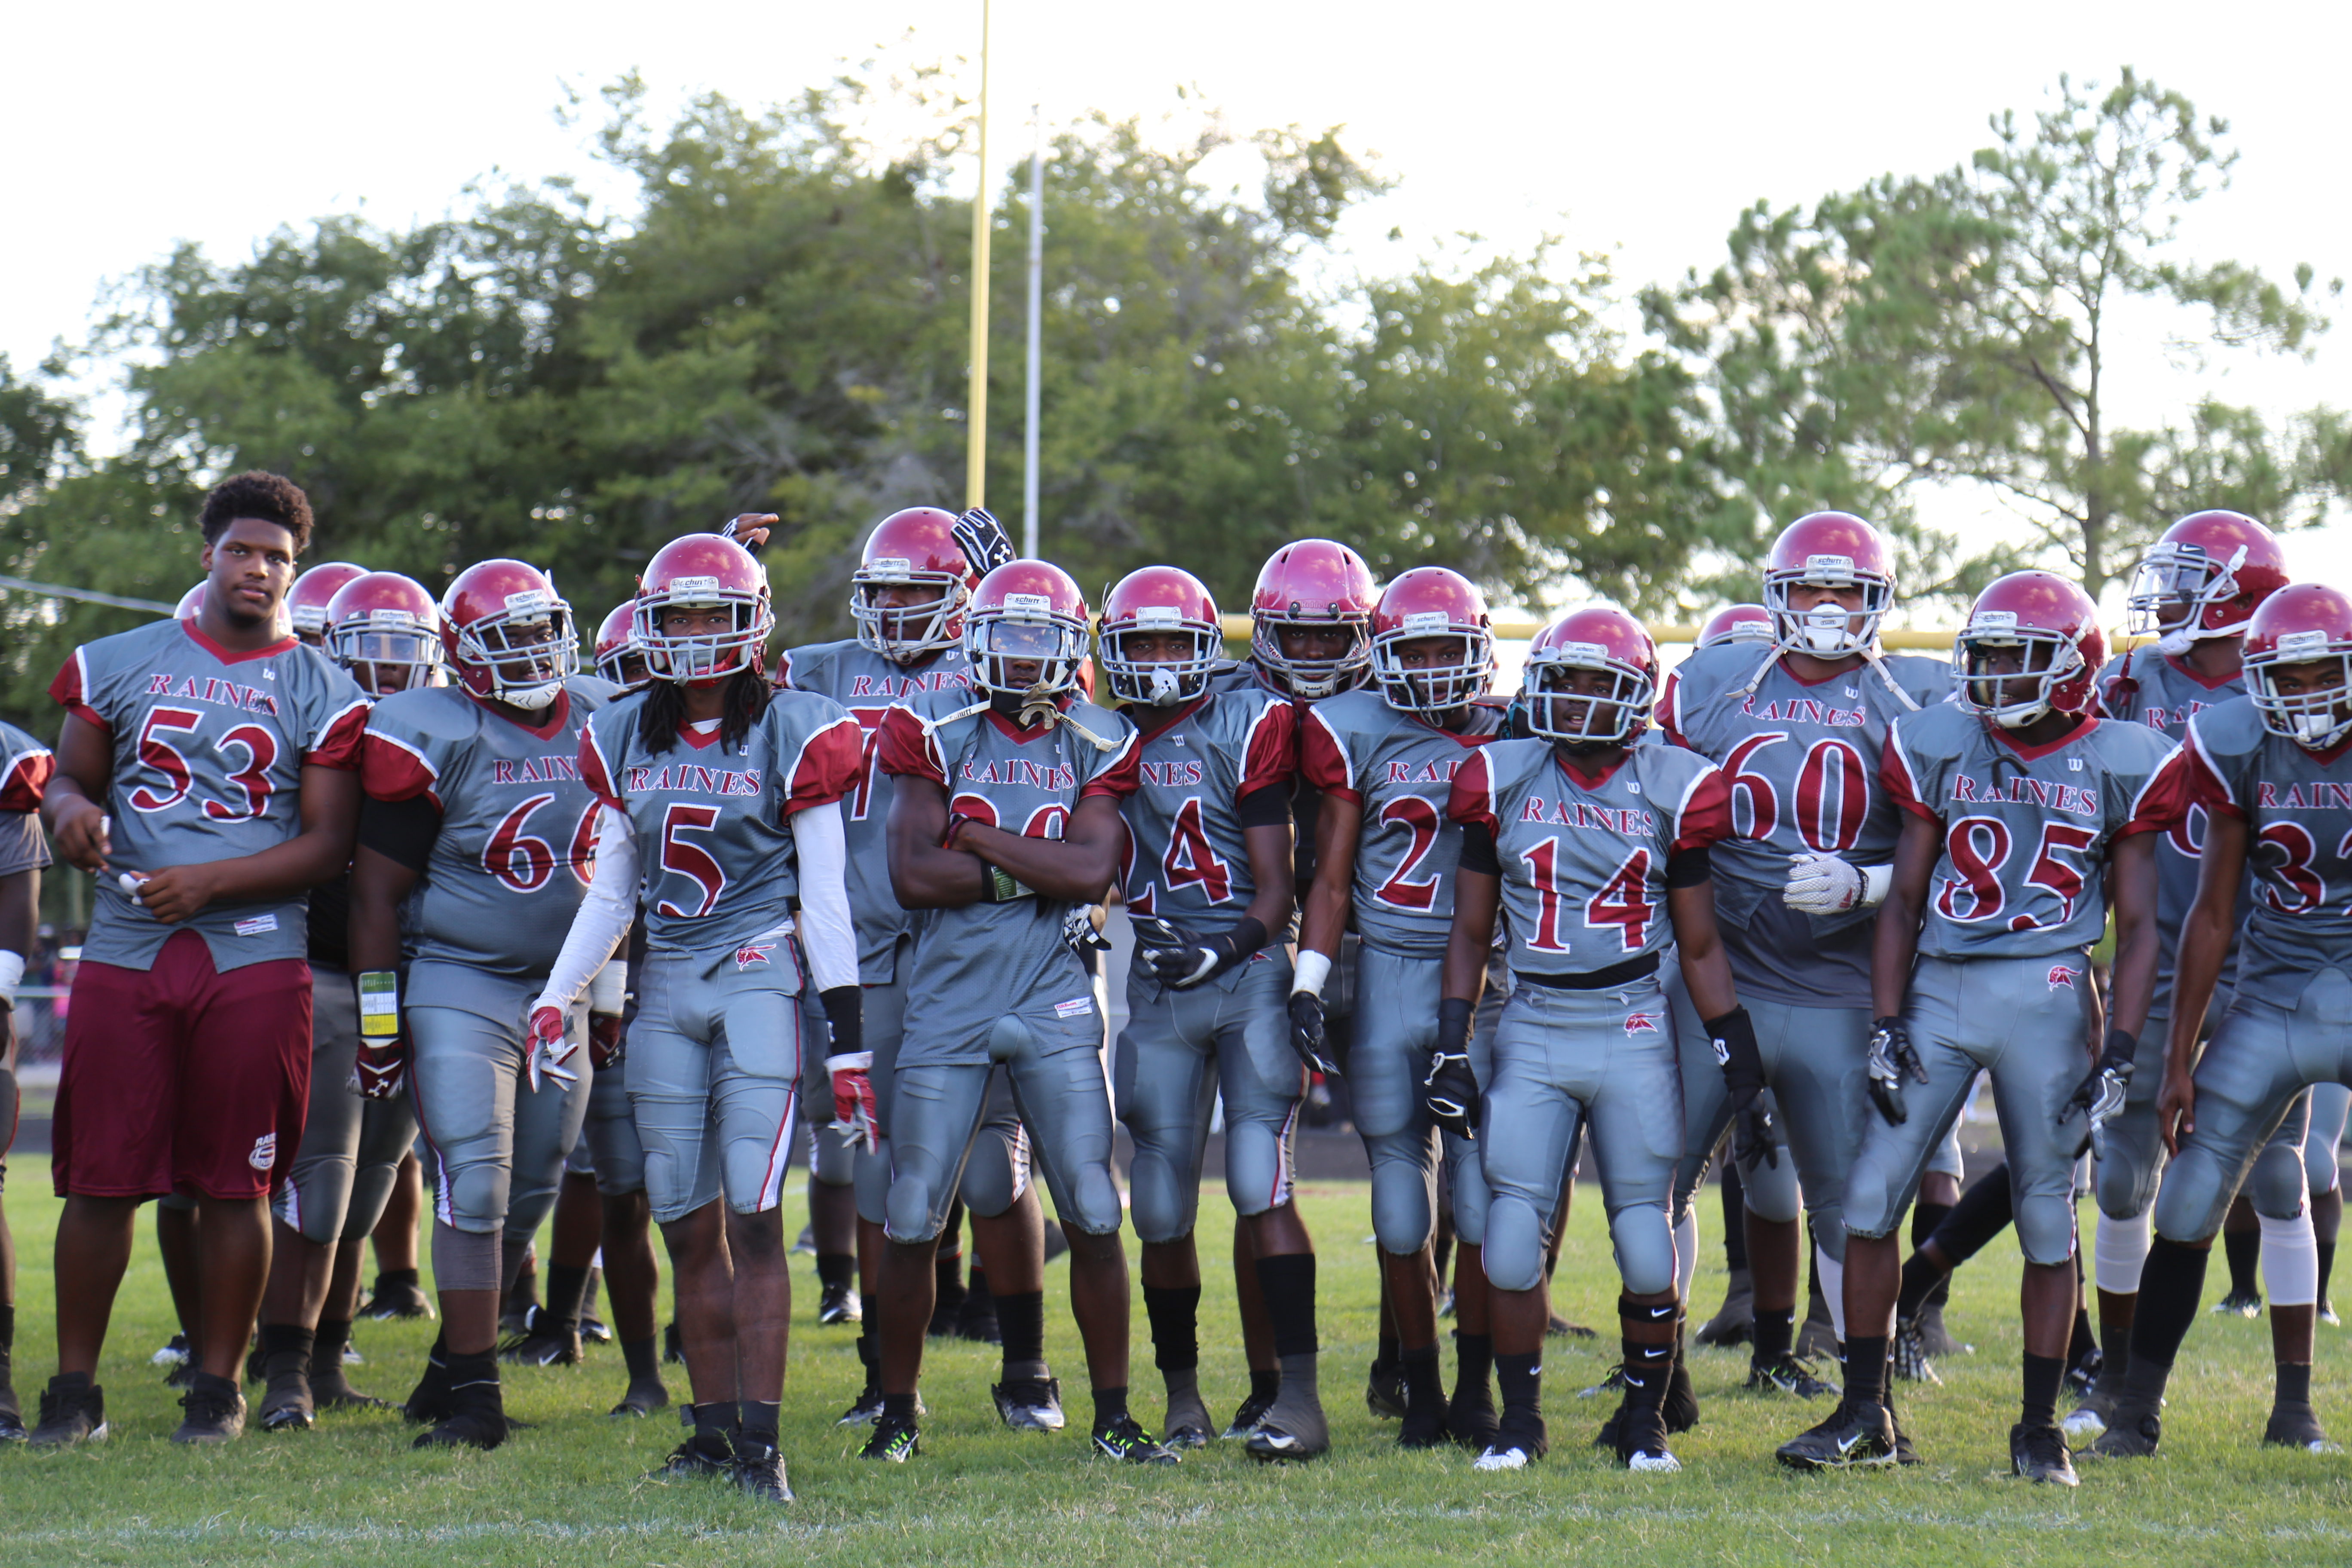 Raines stays in 4A for now but look for the Vikings to possibly move up to 5A.